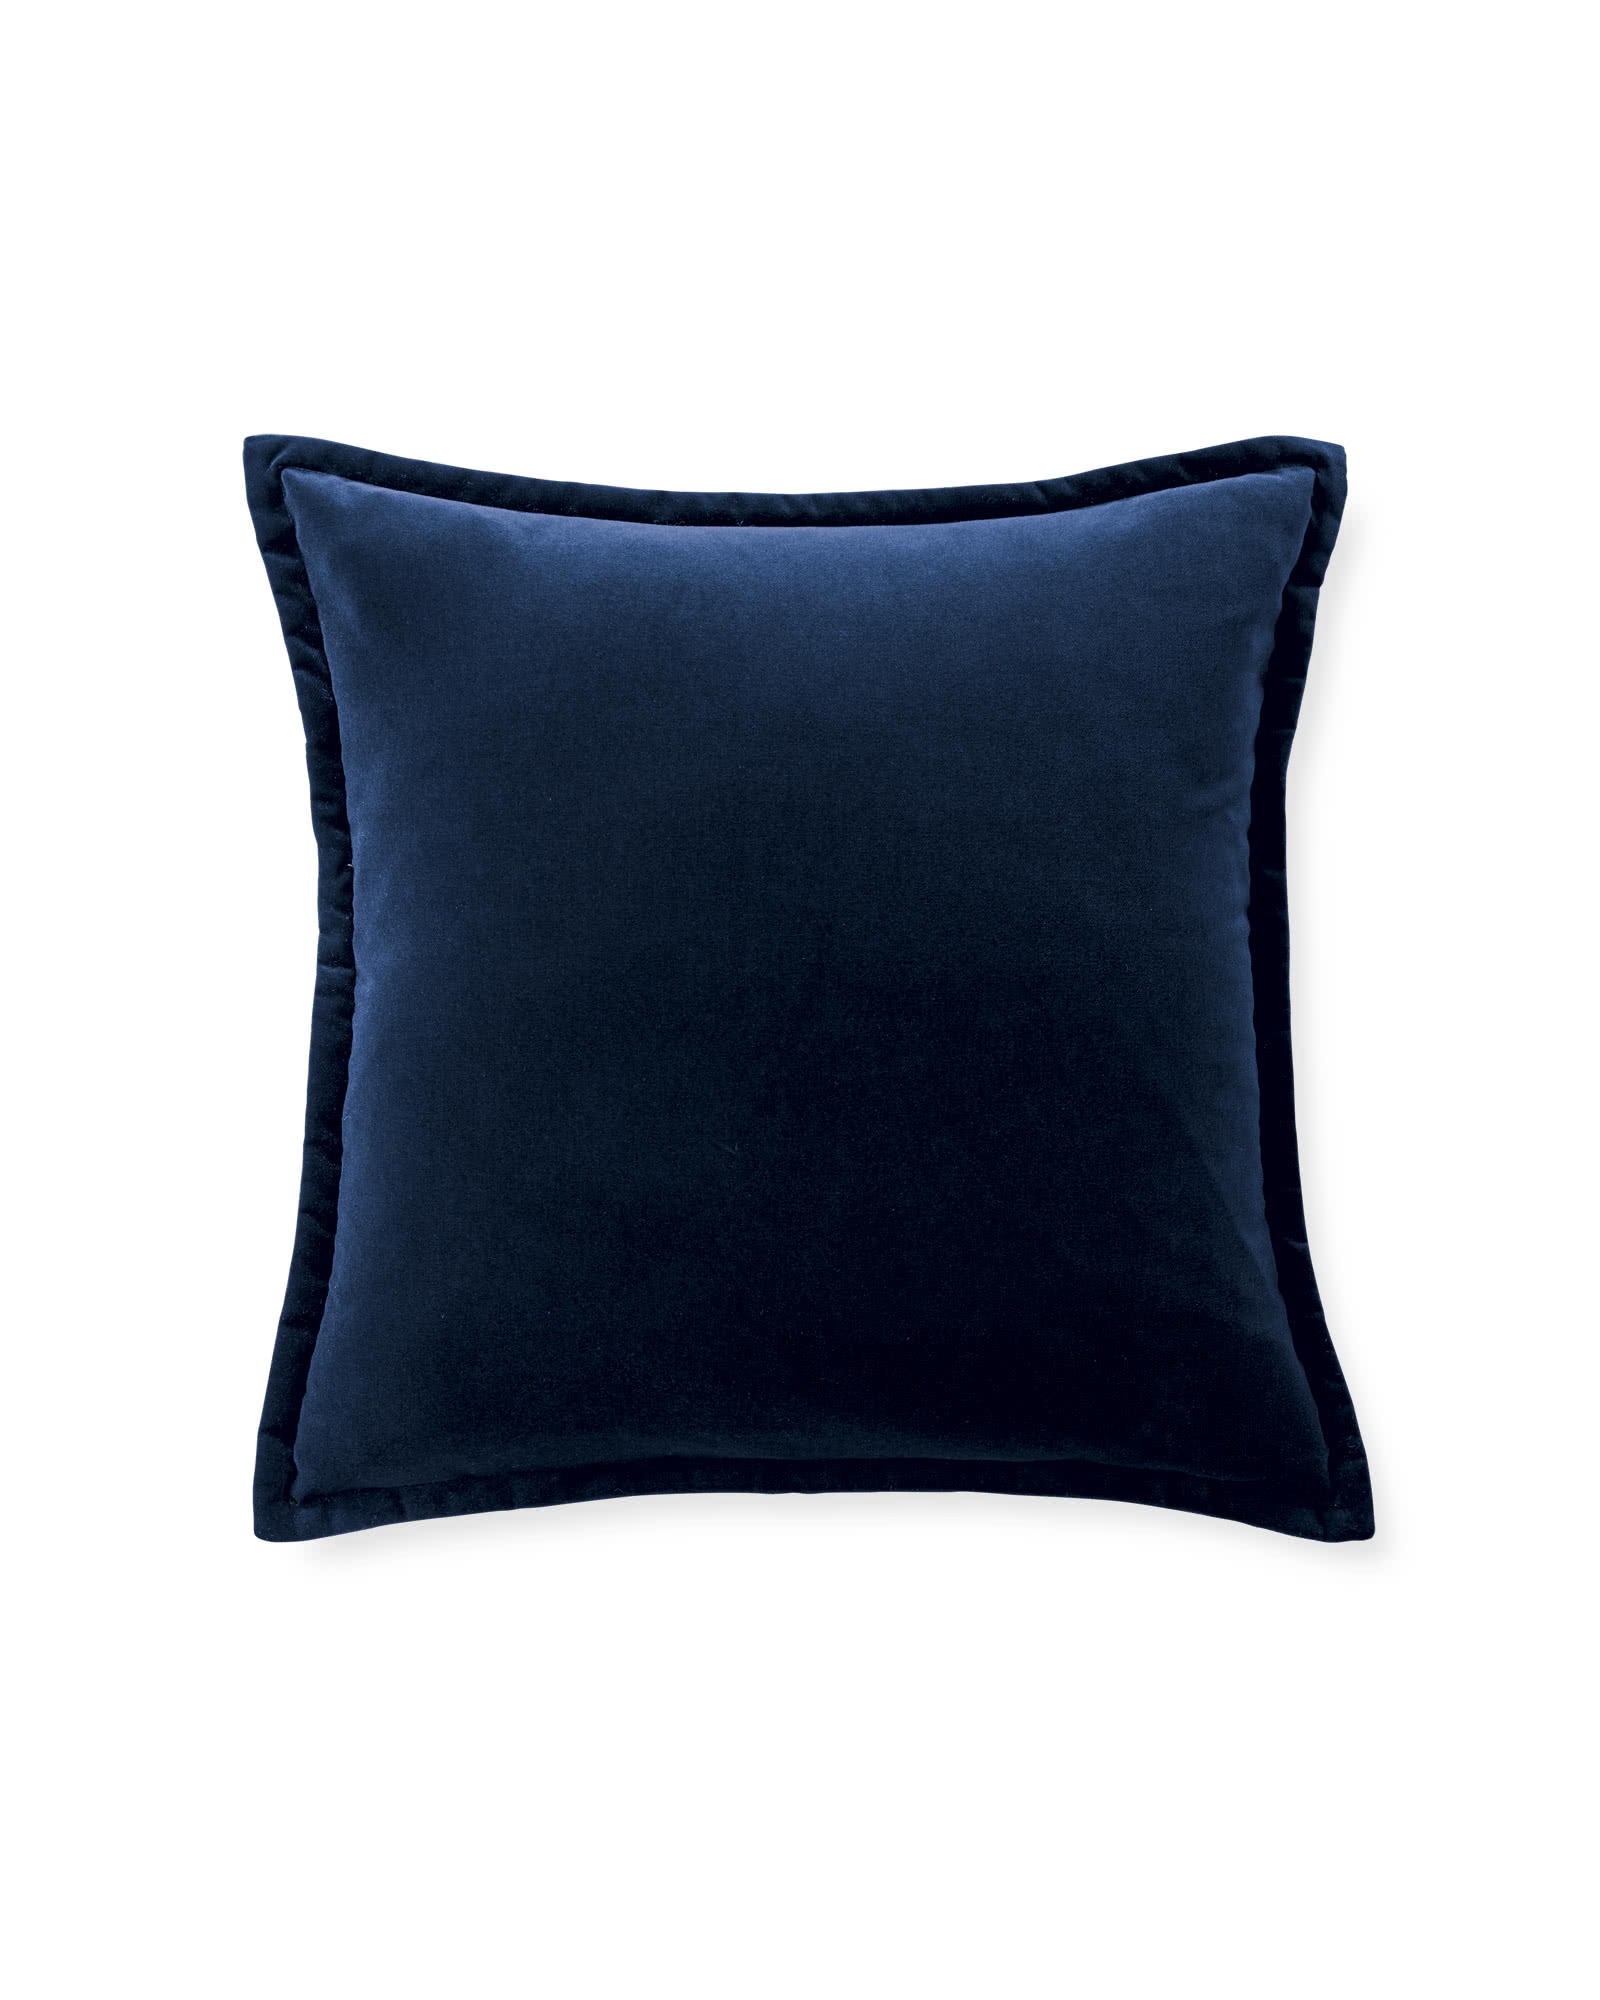 Quinn Velvet Pillow Cover, Midnight